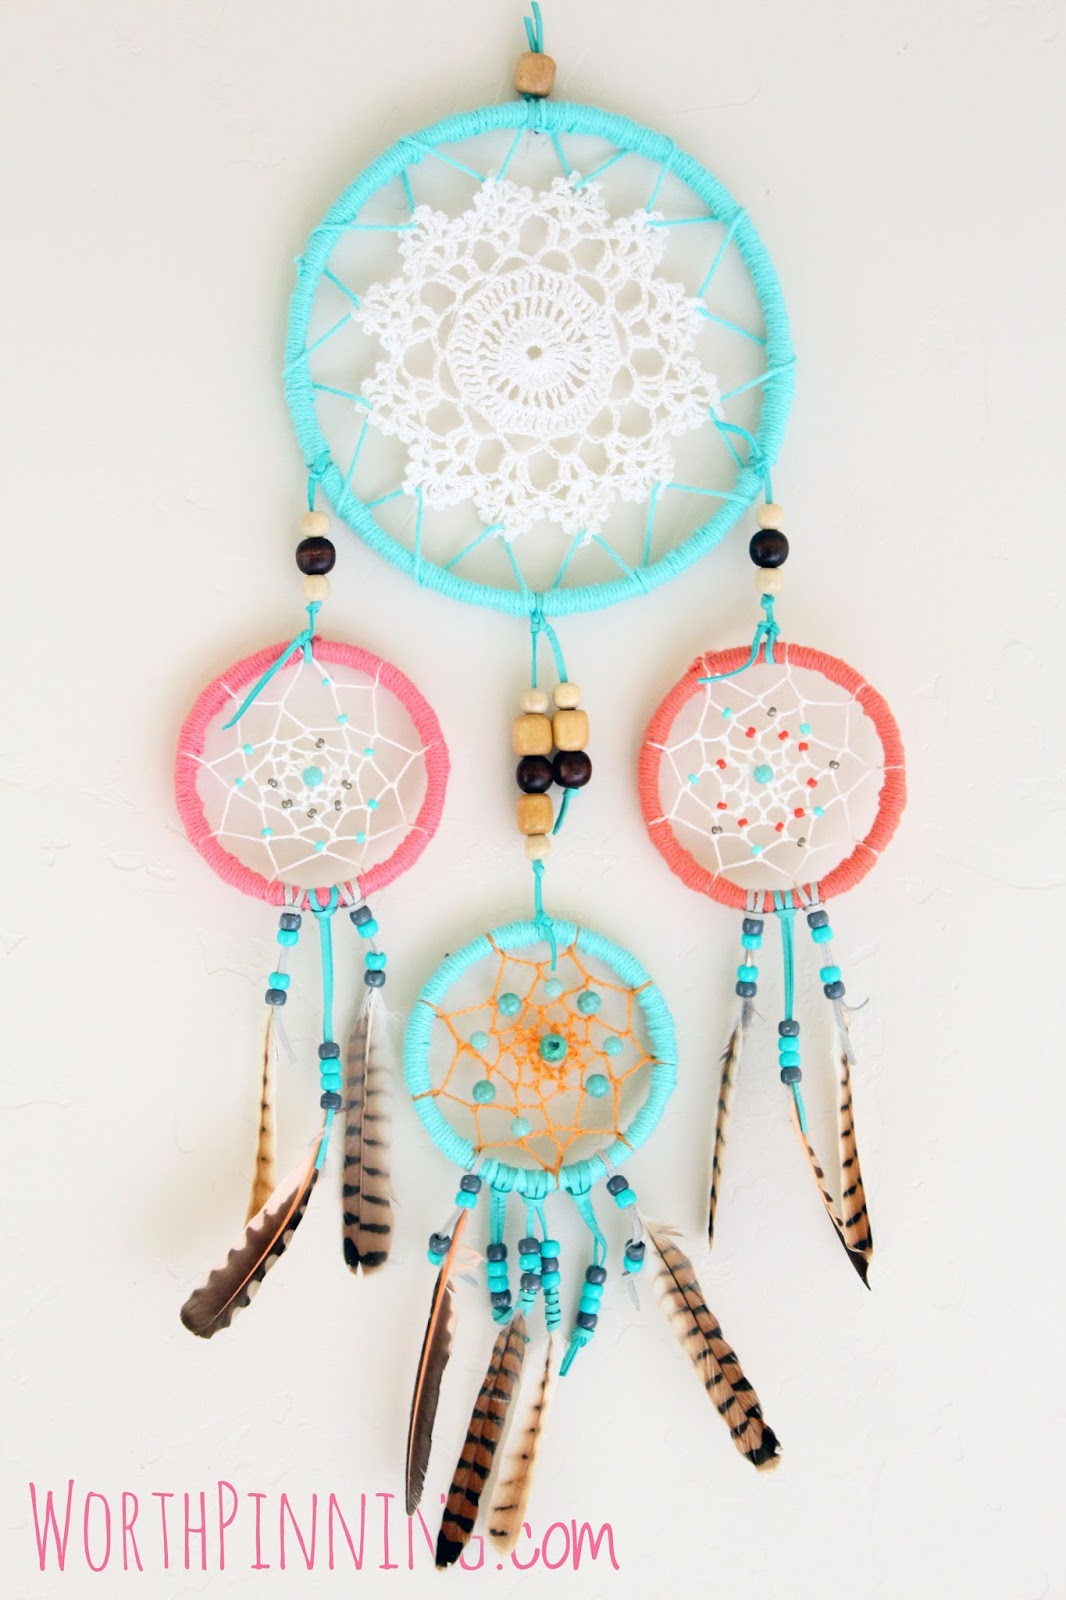 Crafts Dream Catcher Kit Instructions